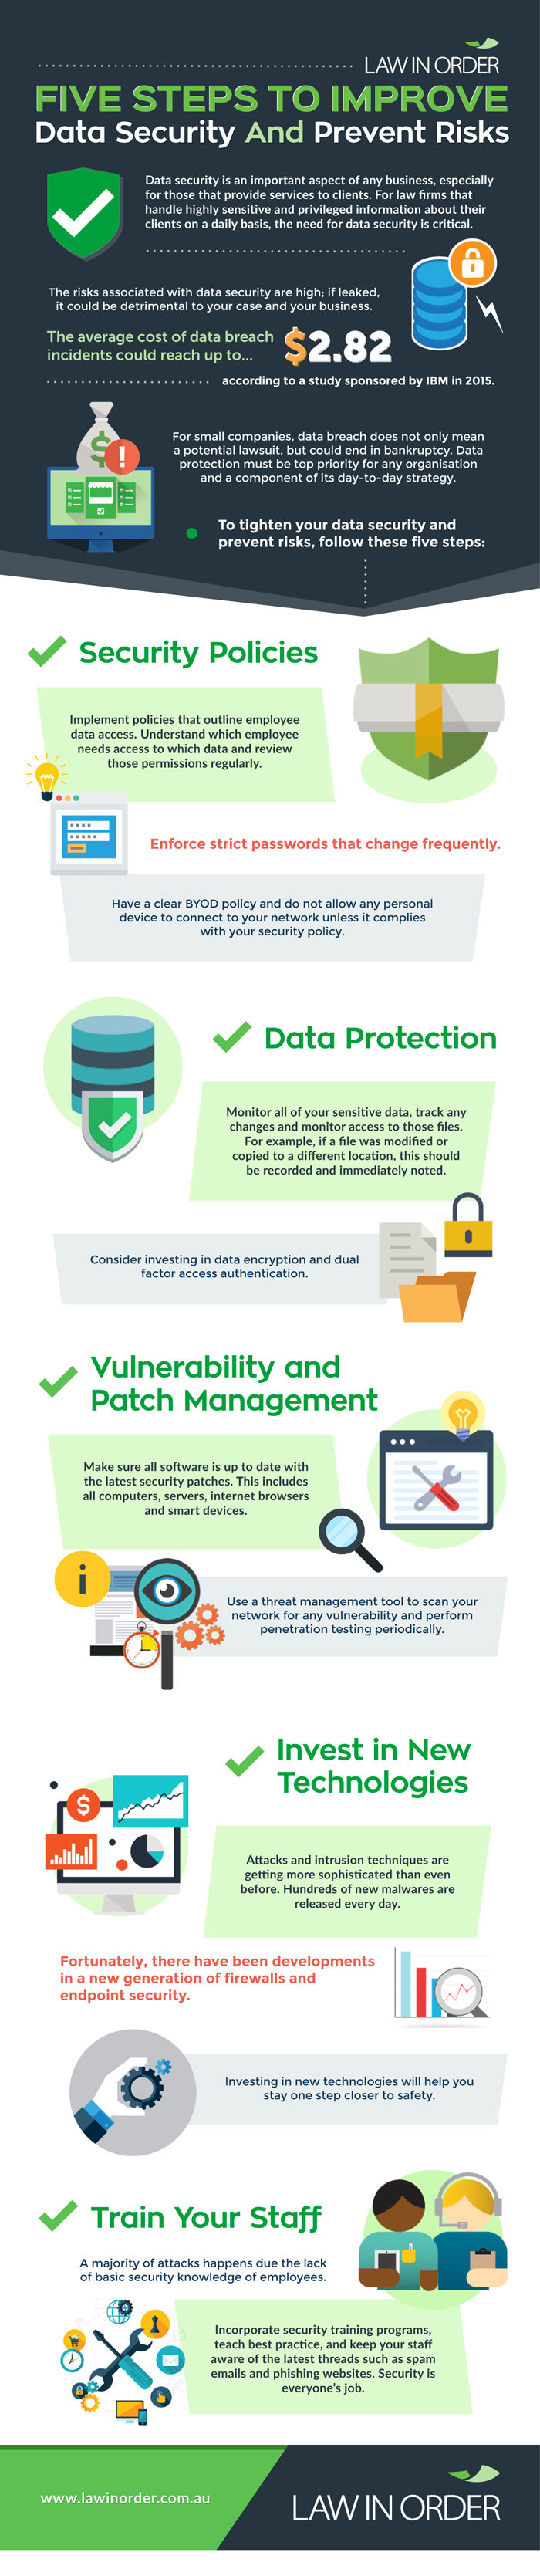 Improving data security - infographic by Law In Order